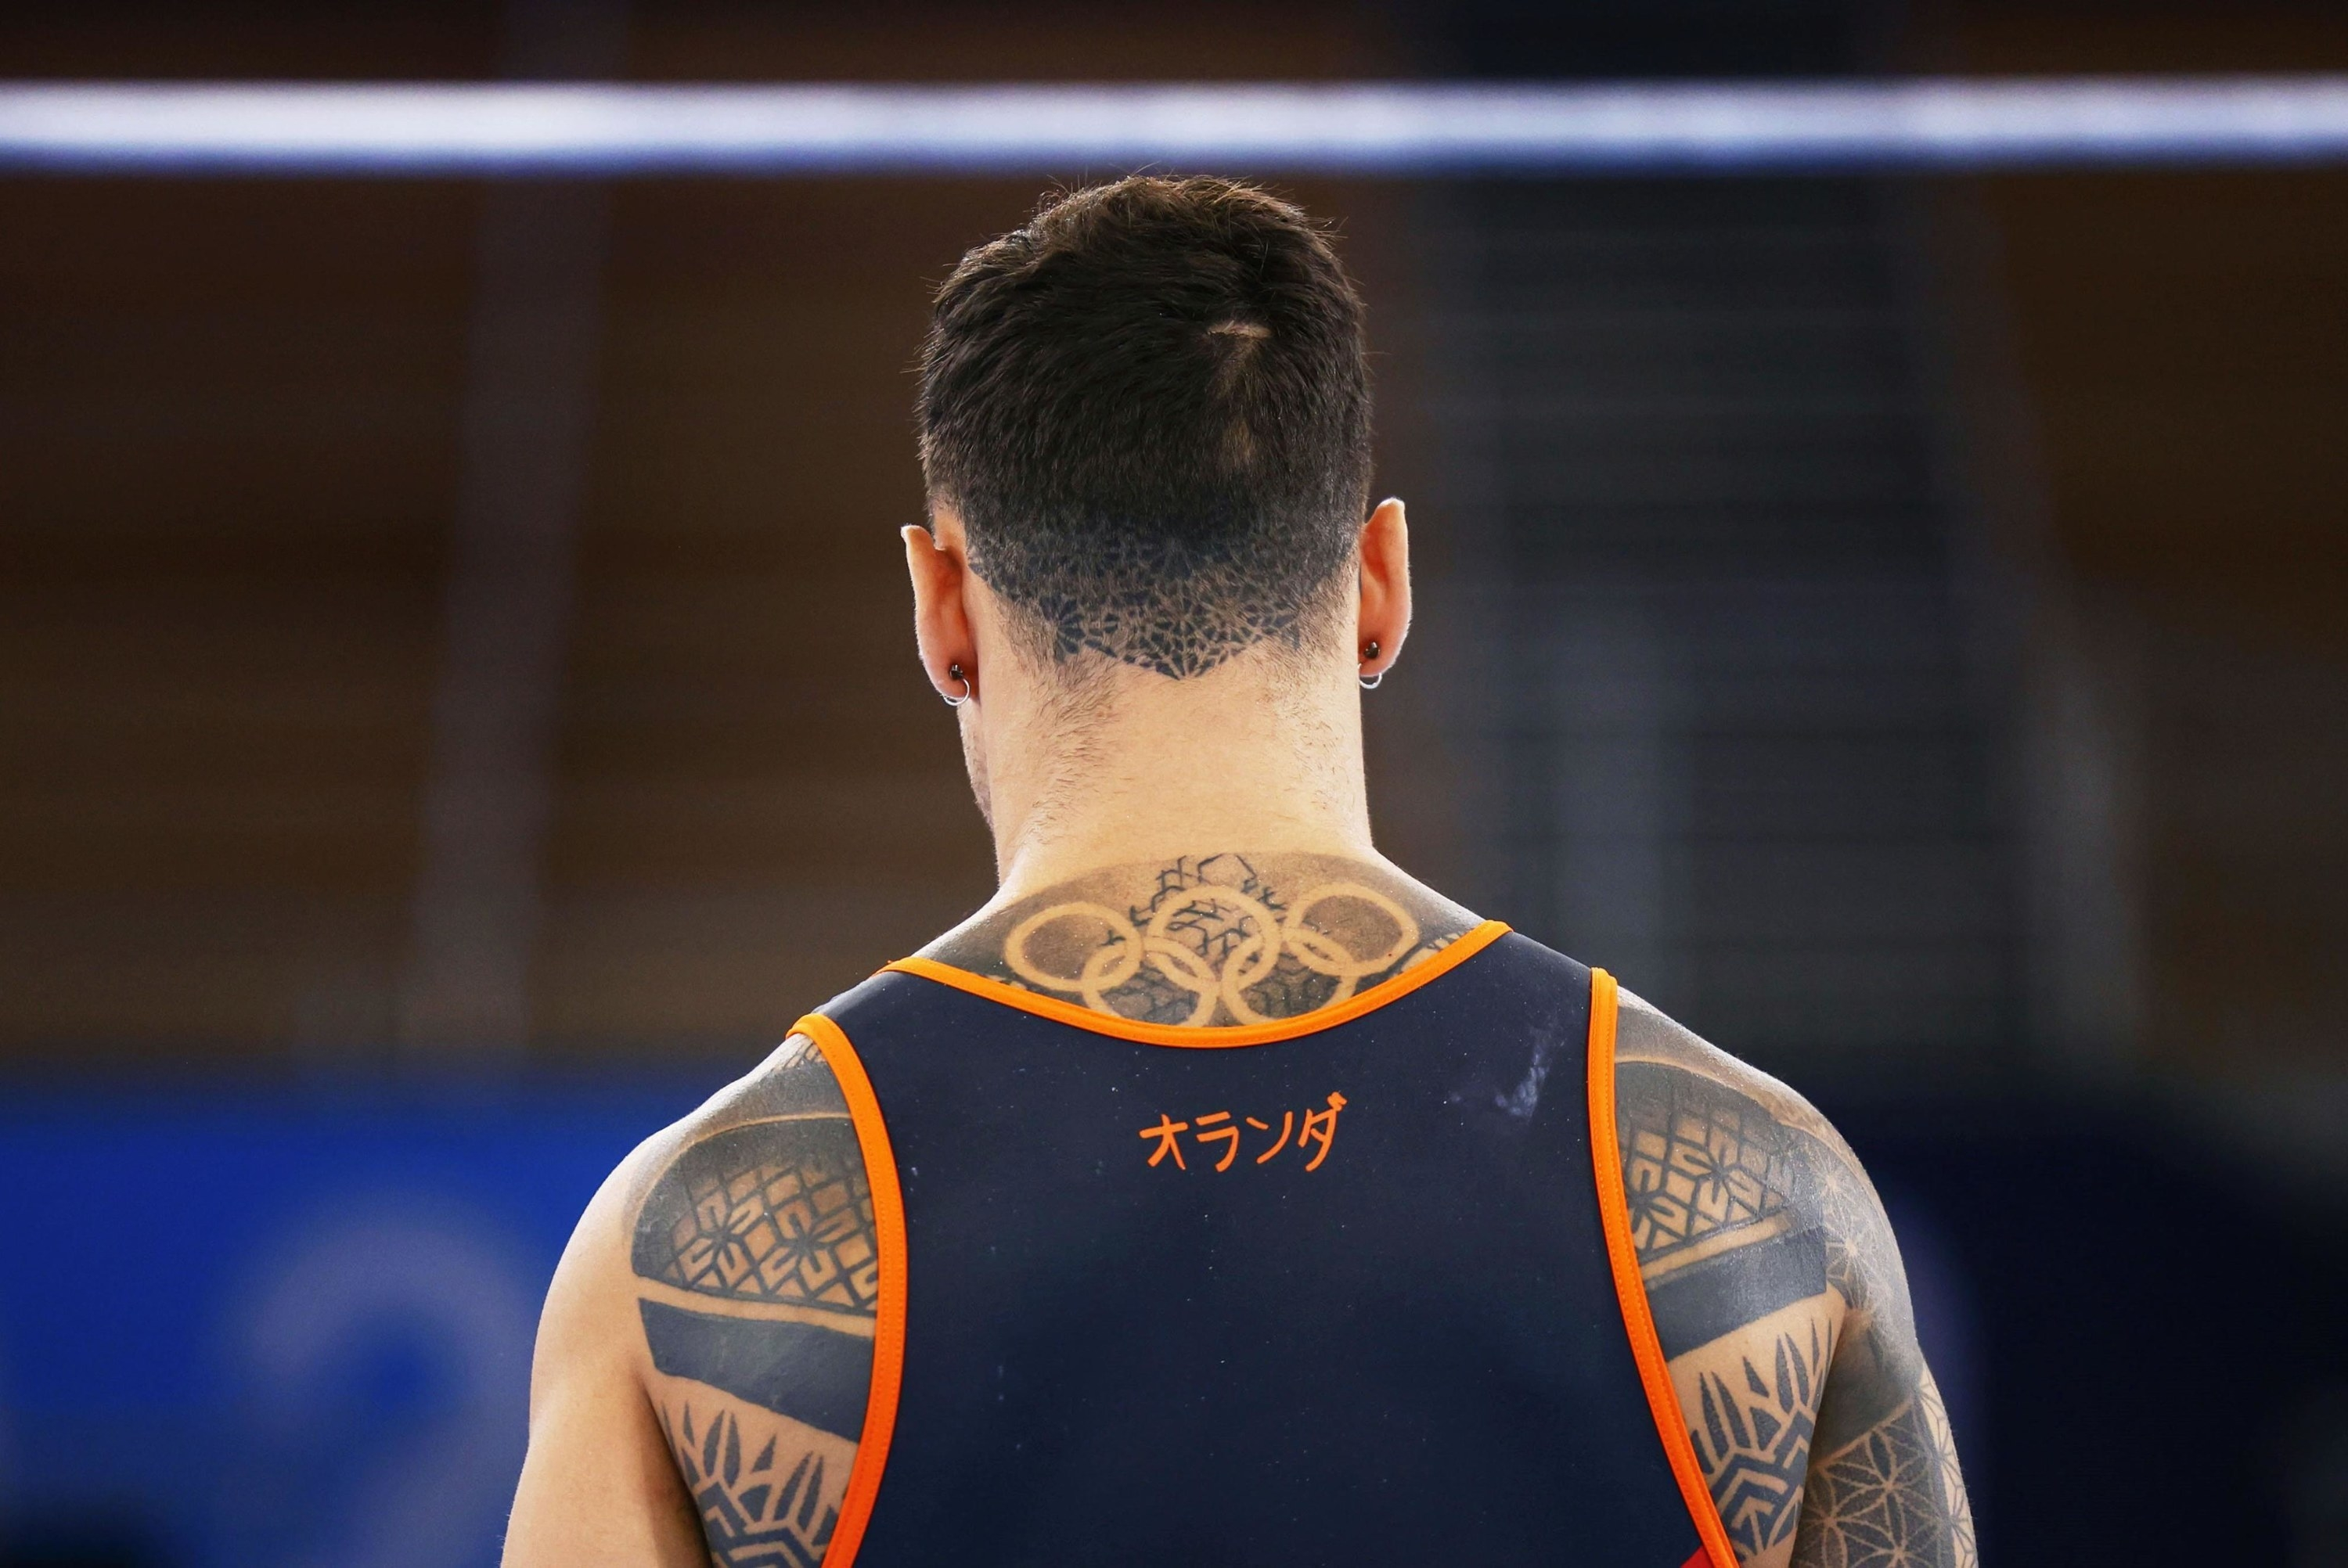 Back view of a male gymnast's tattoos.